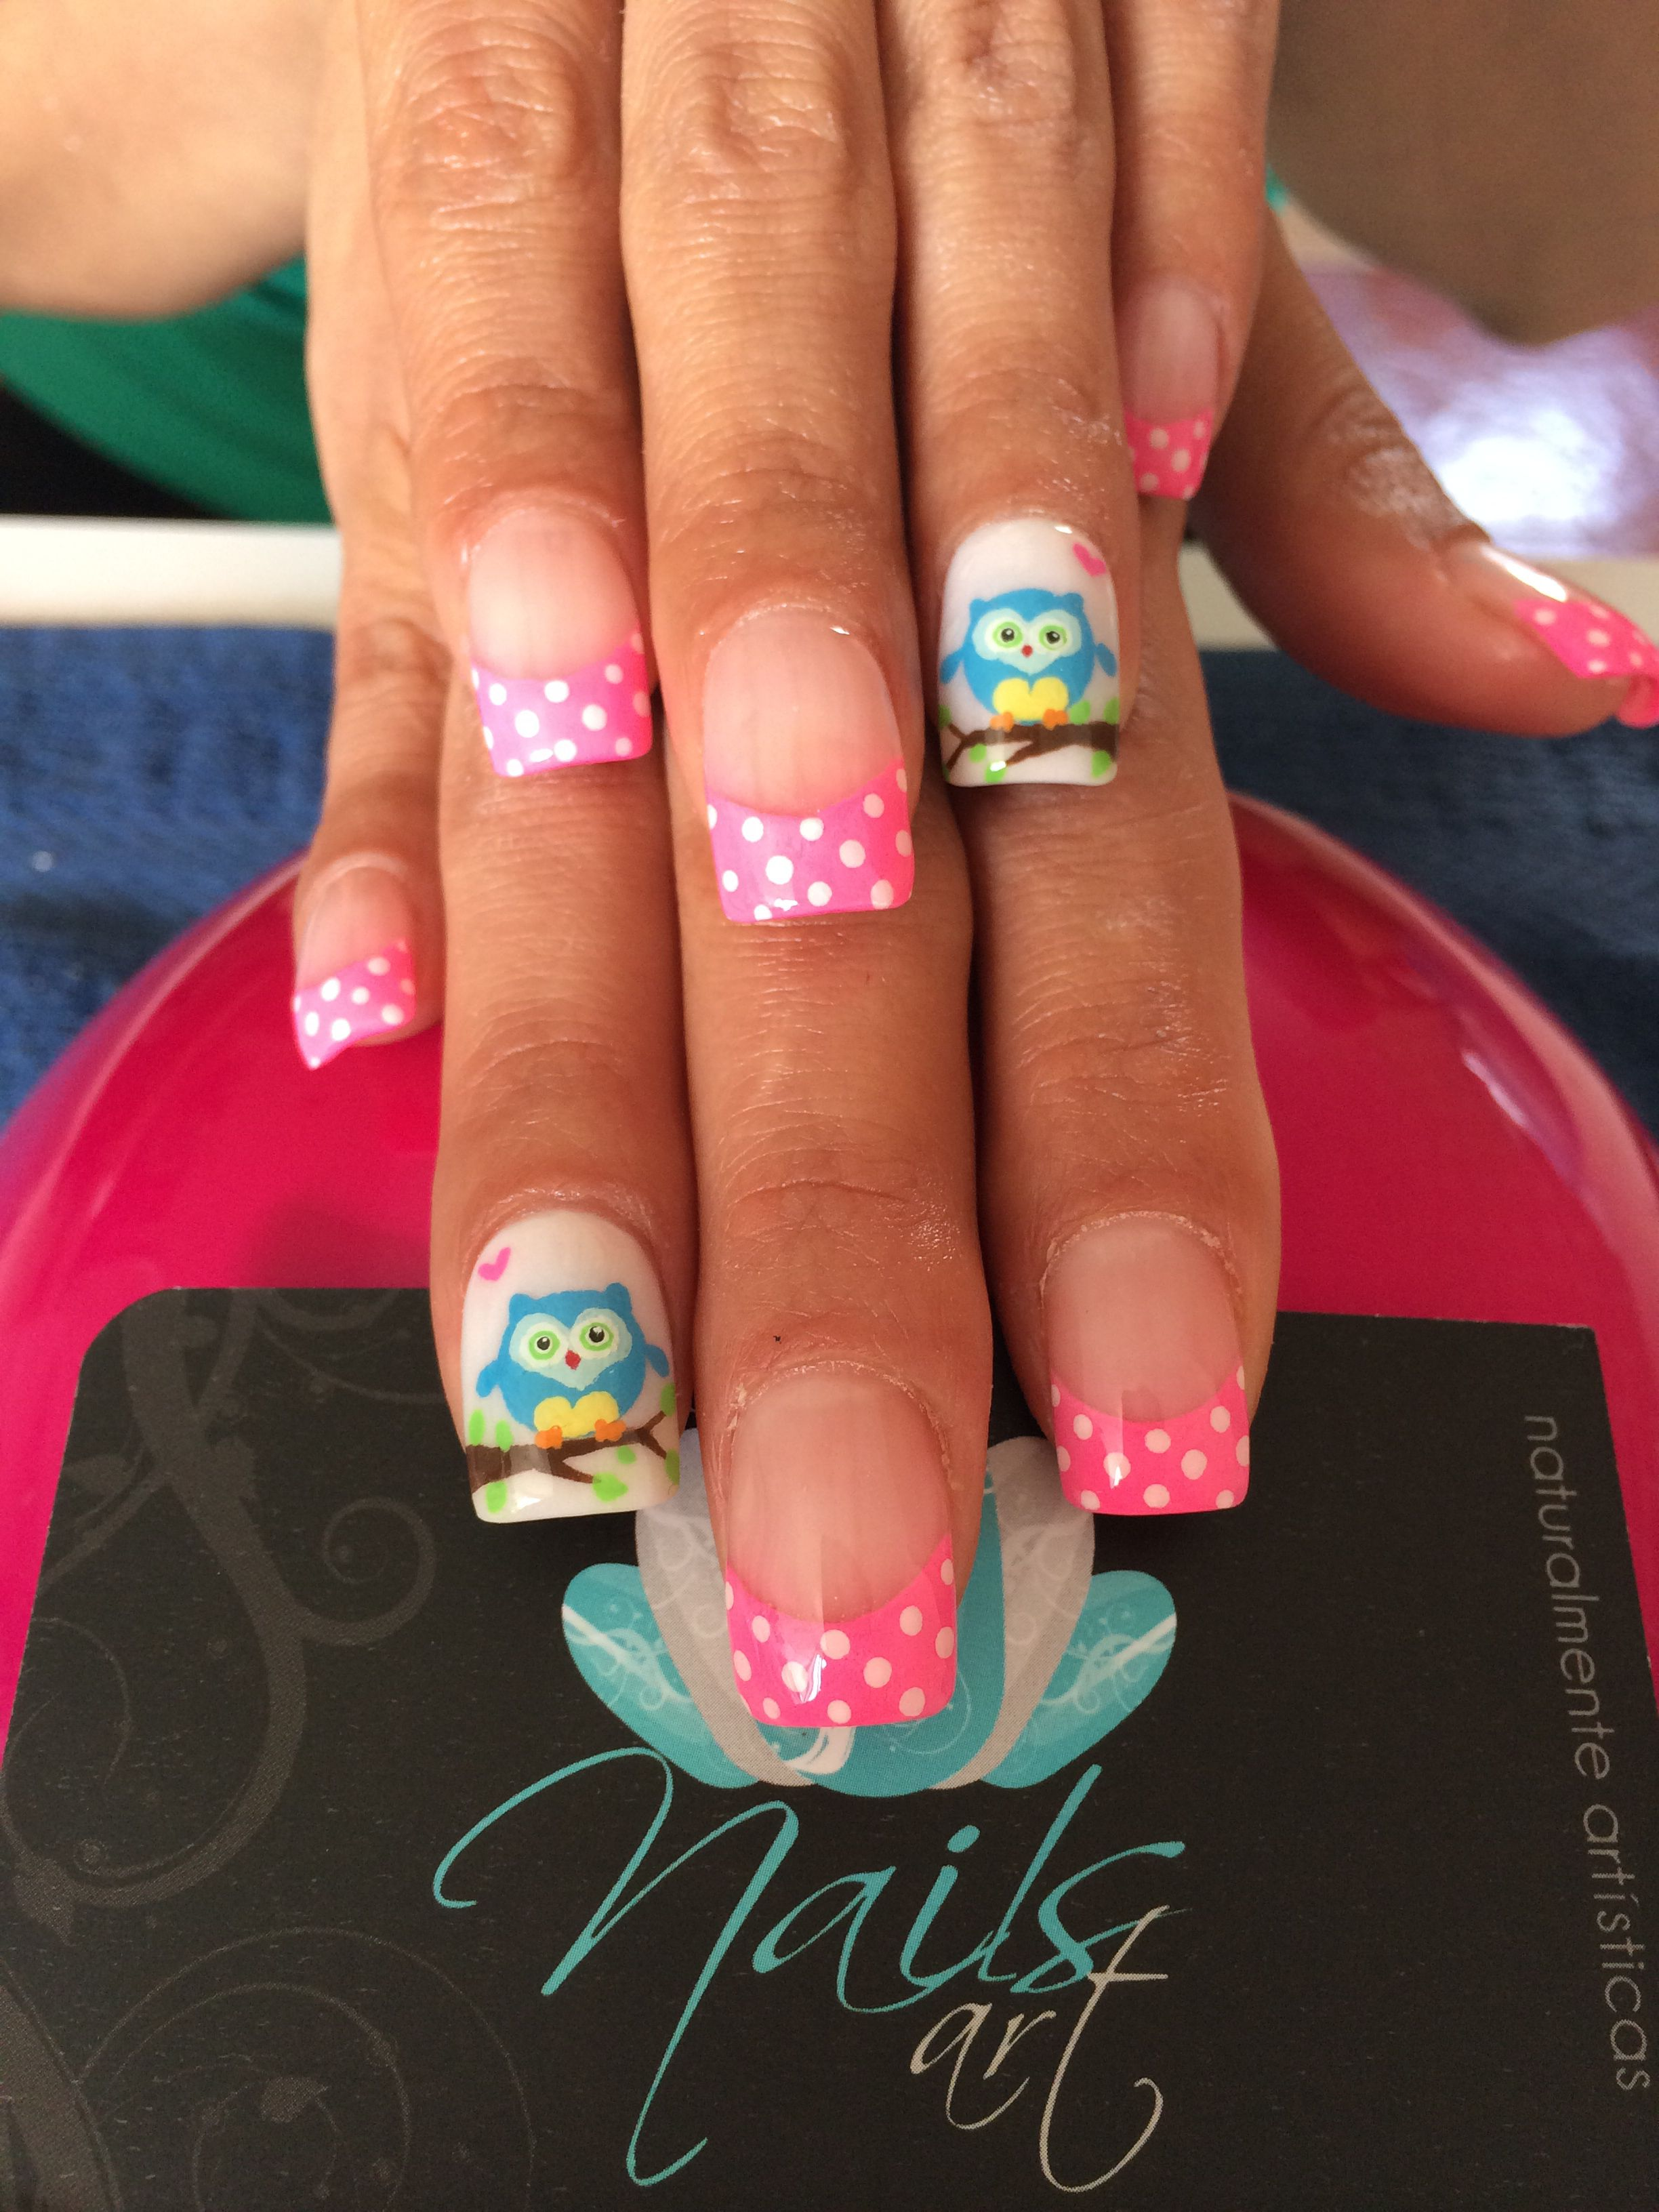 Nails art, acrylic nails, nails LunaRip~ Awww The owls Are Sooo ...